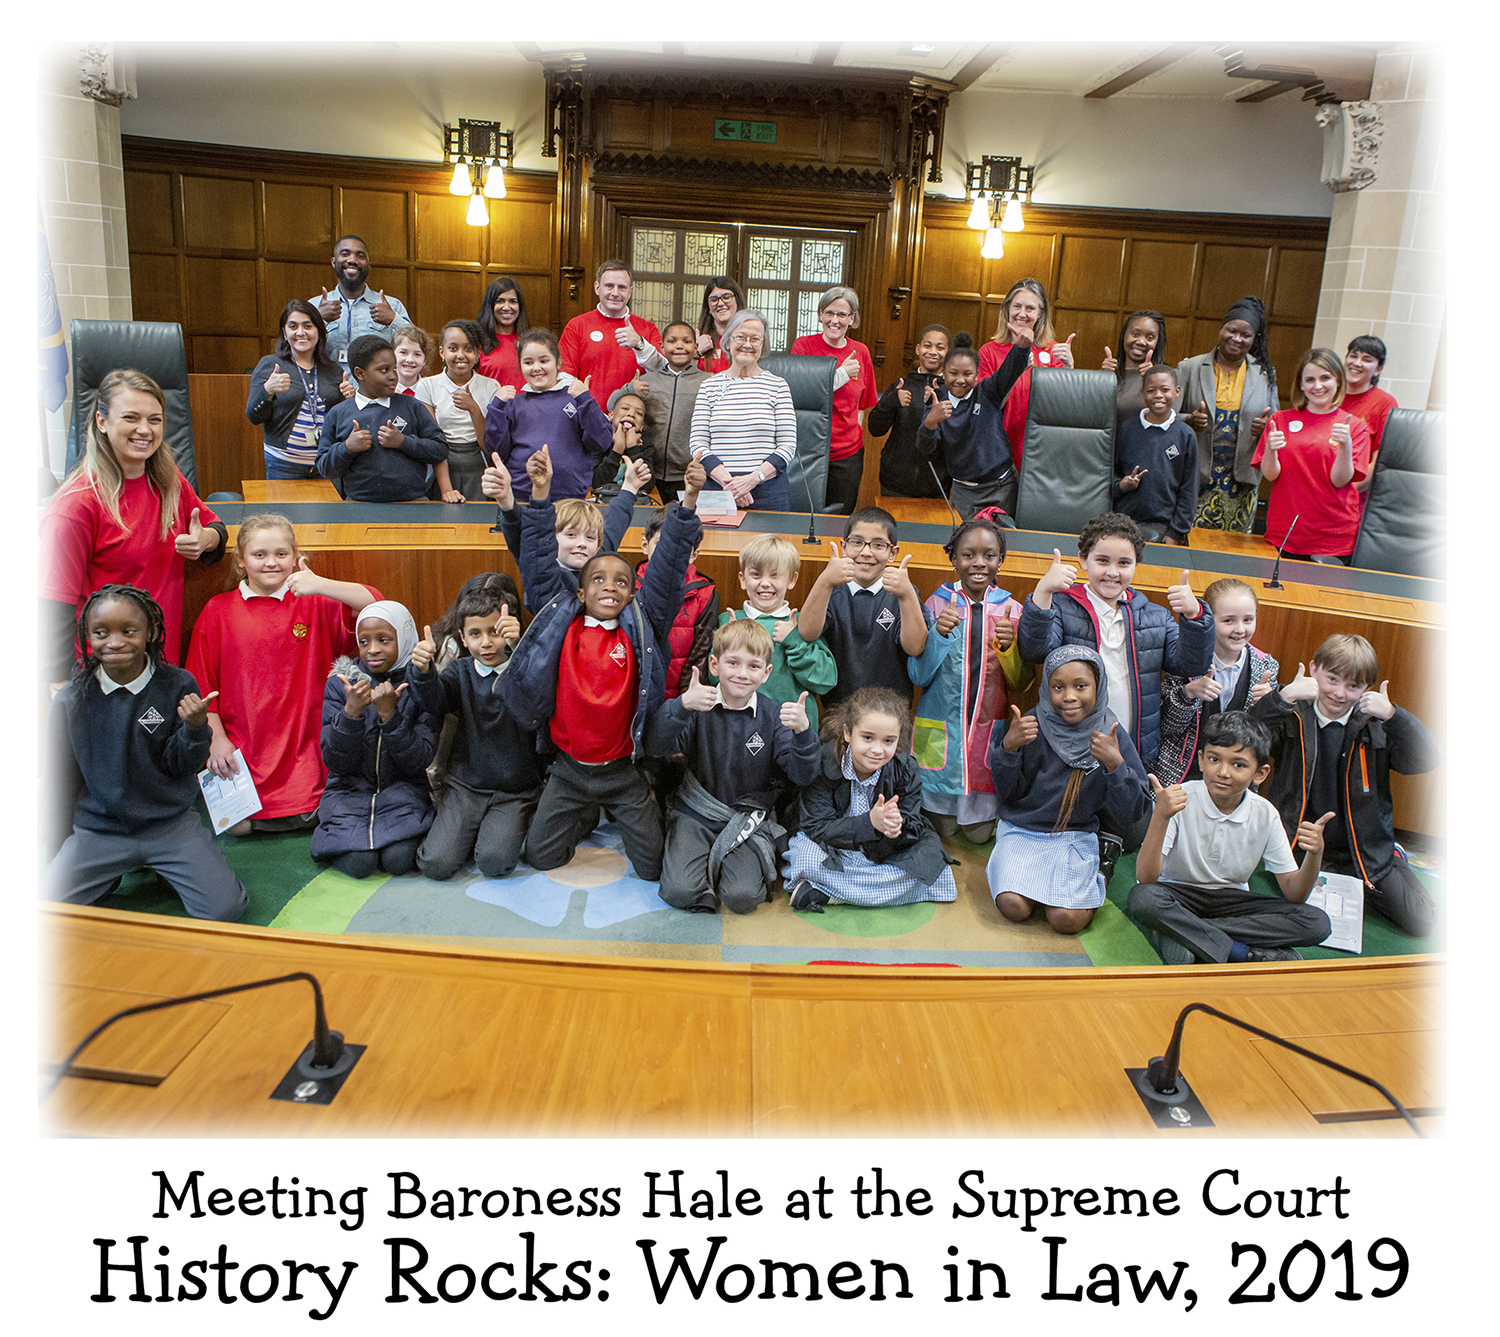 A group of children with Lady Hale, First Female President of the Supreme Court of the UK